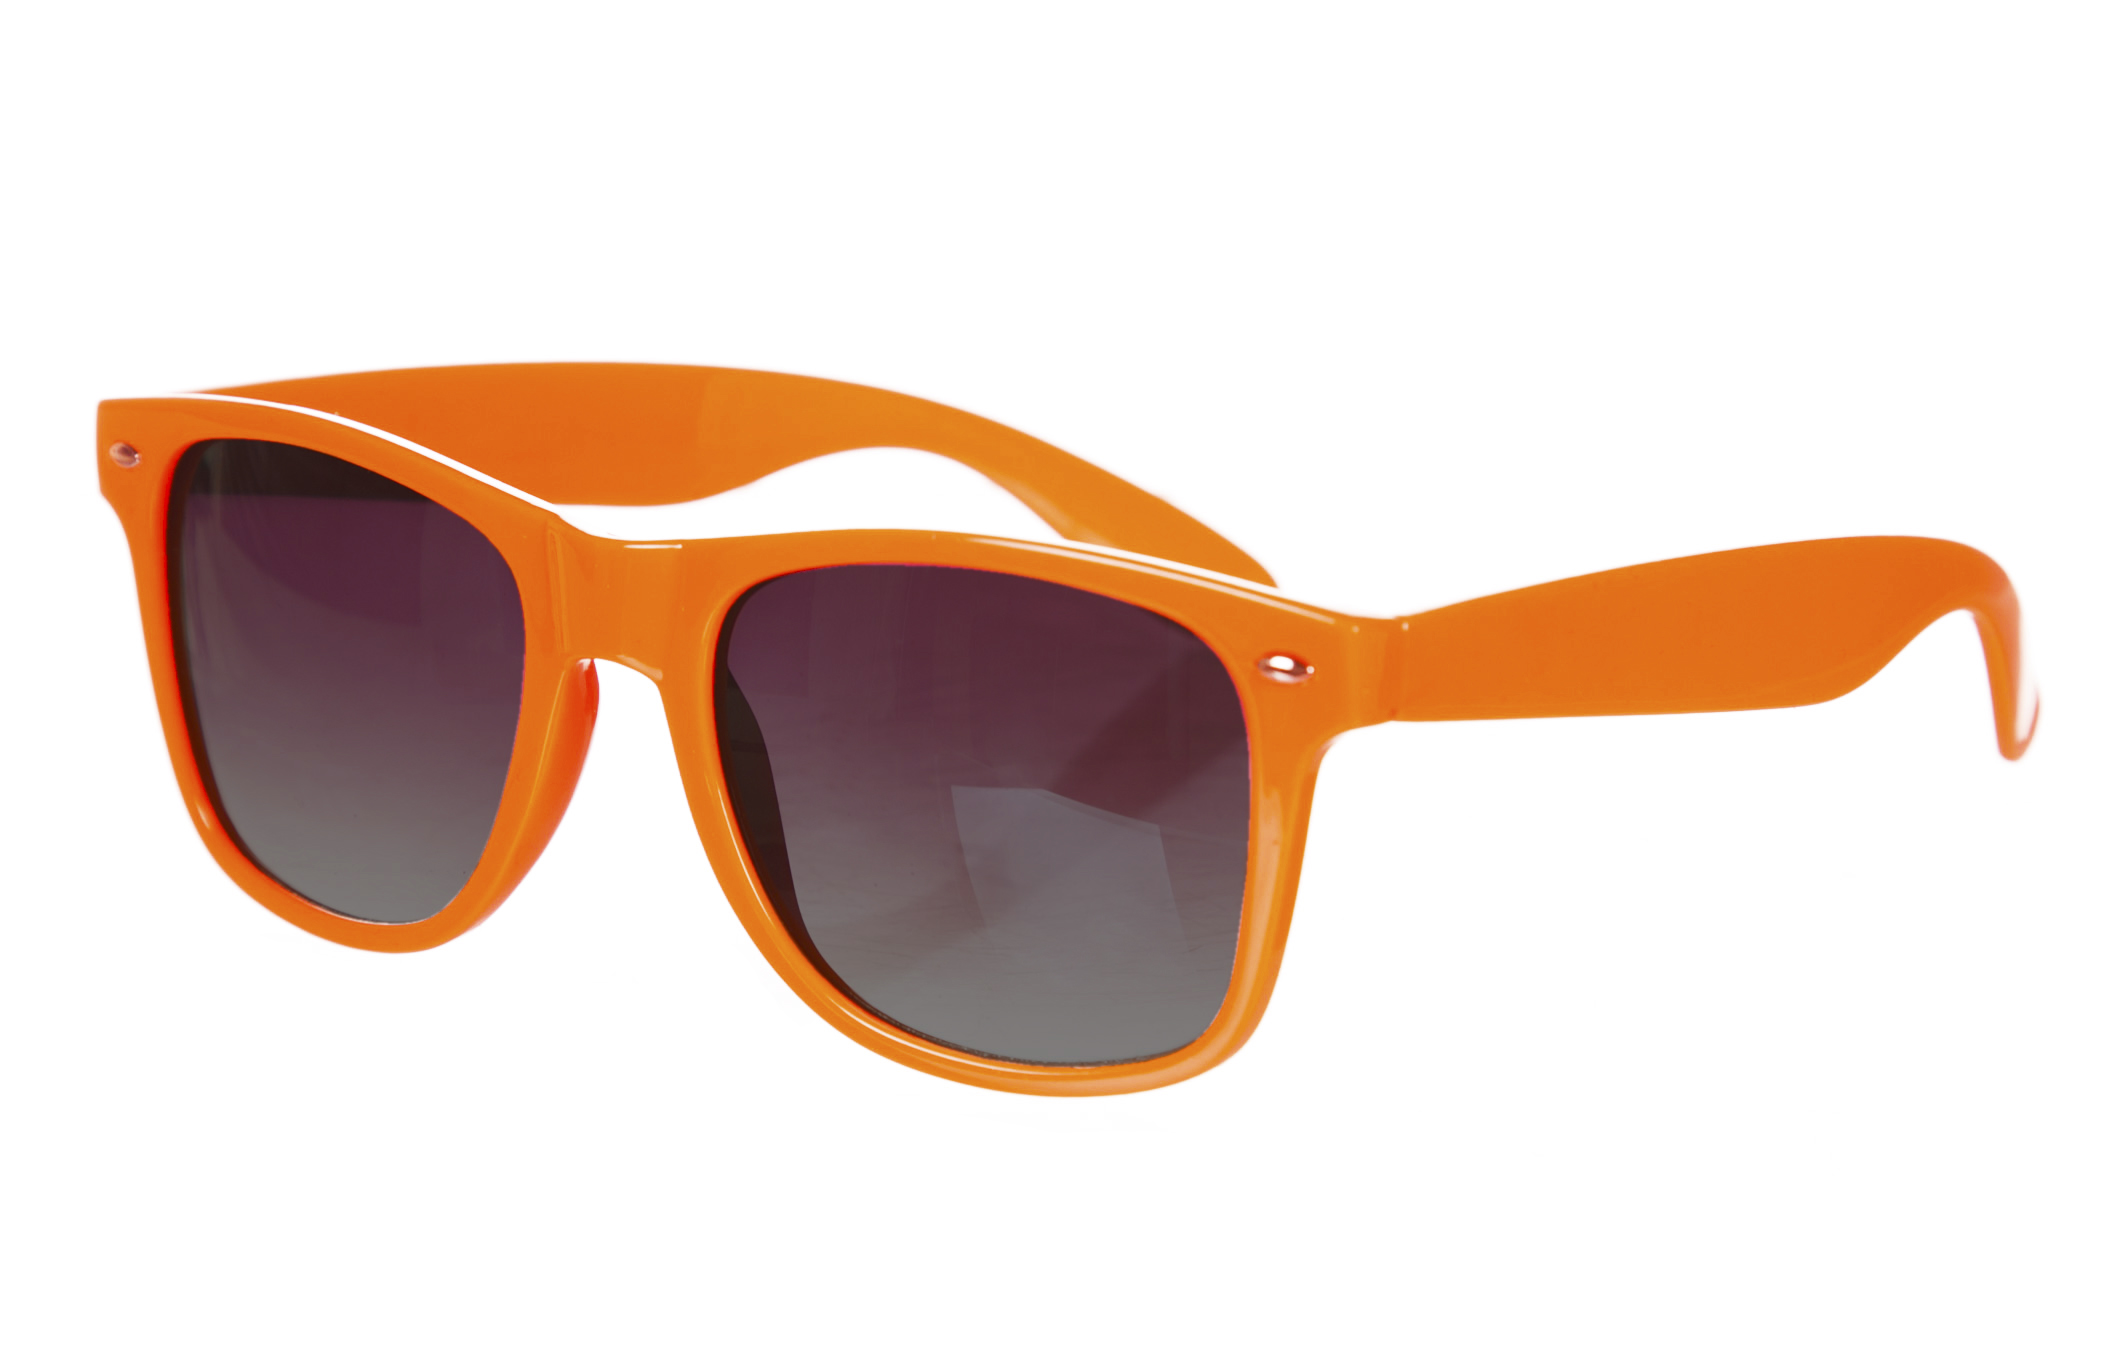 Orange Wayfarer Sunglasses £14.99